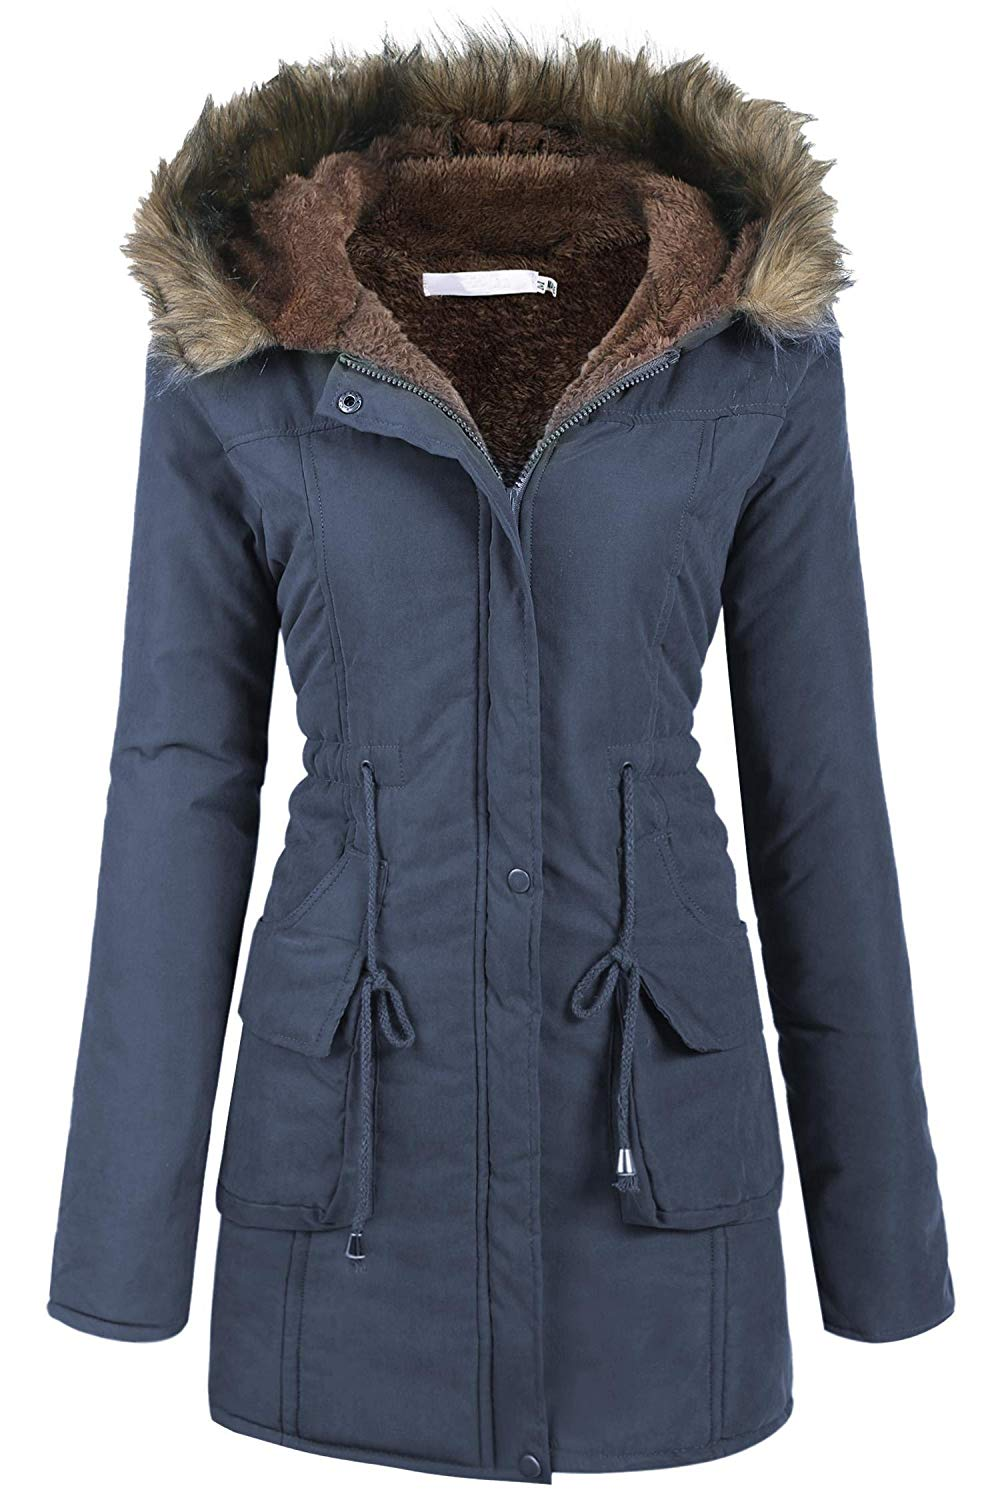 3e621b771276d Get Quotations · dongba Winter Coats for Women on Sale Plus Size Winter  Coats for Women Plus Size Winter